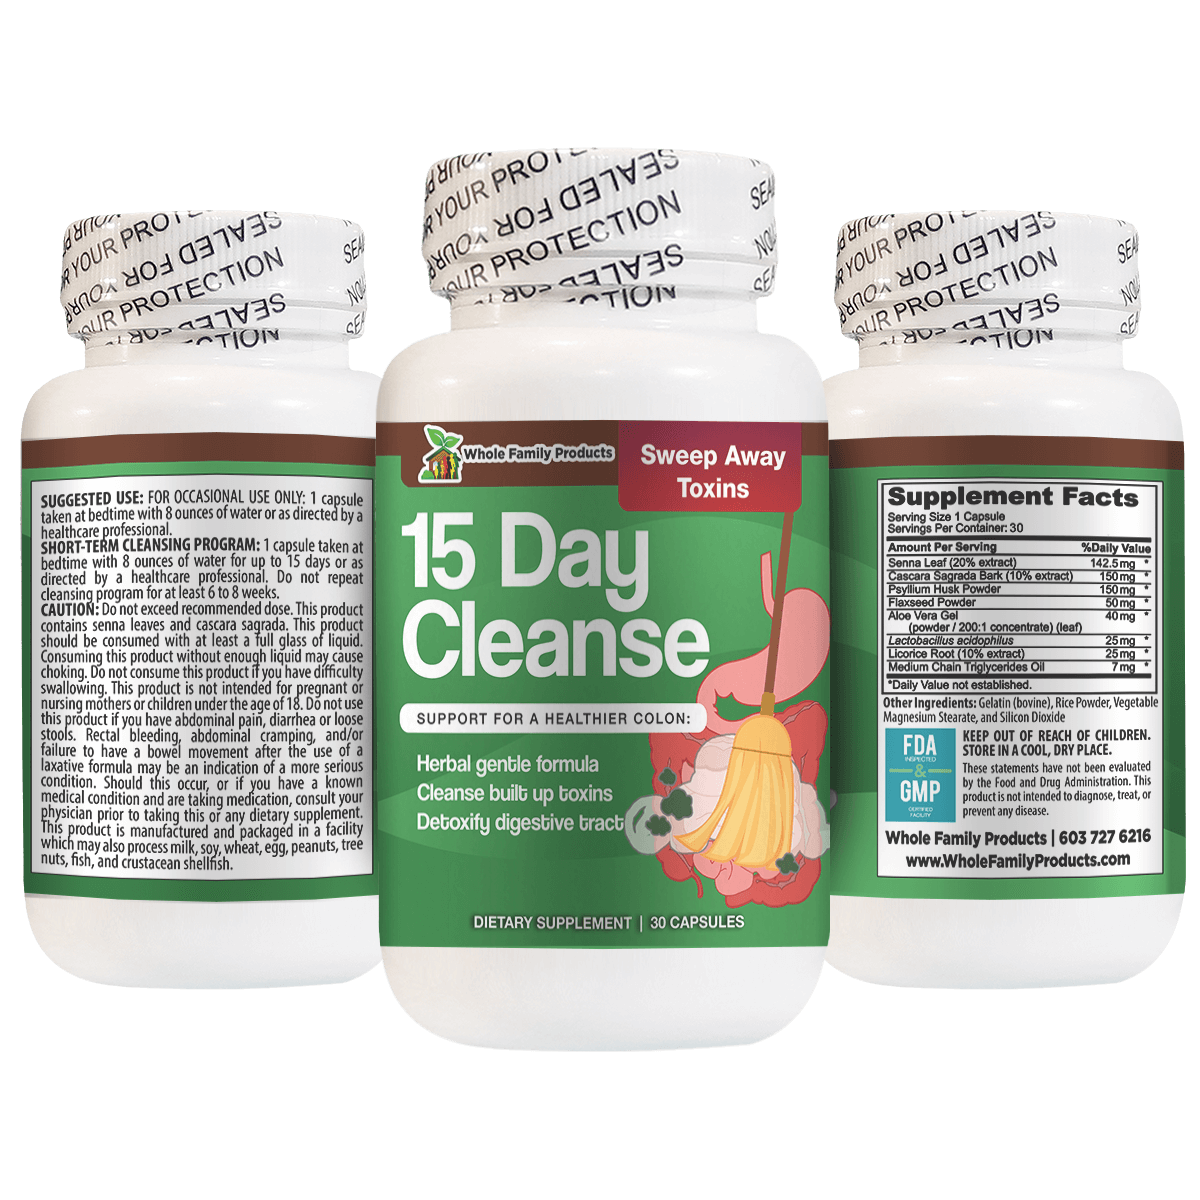 15 Day Cleanse Helps Detoxify Digestive Tract